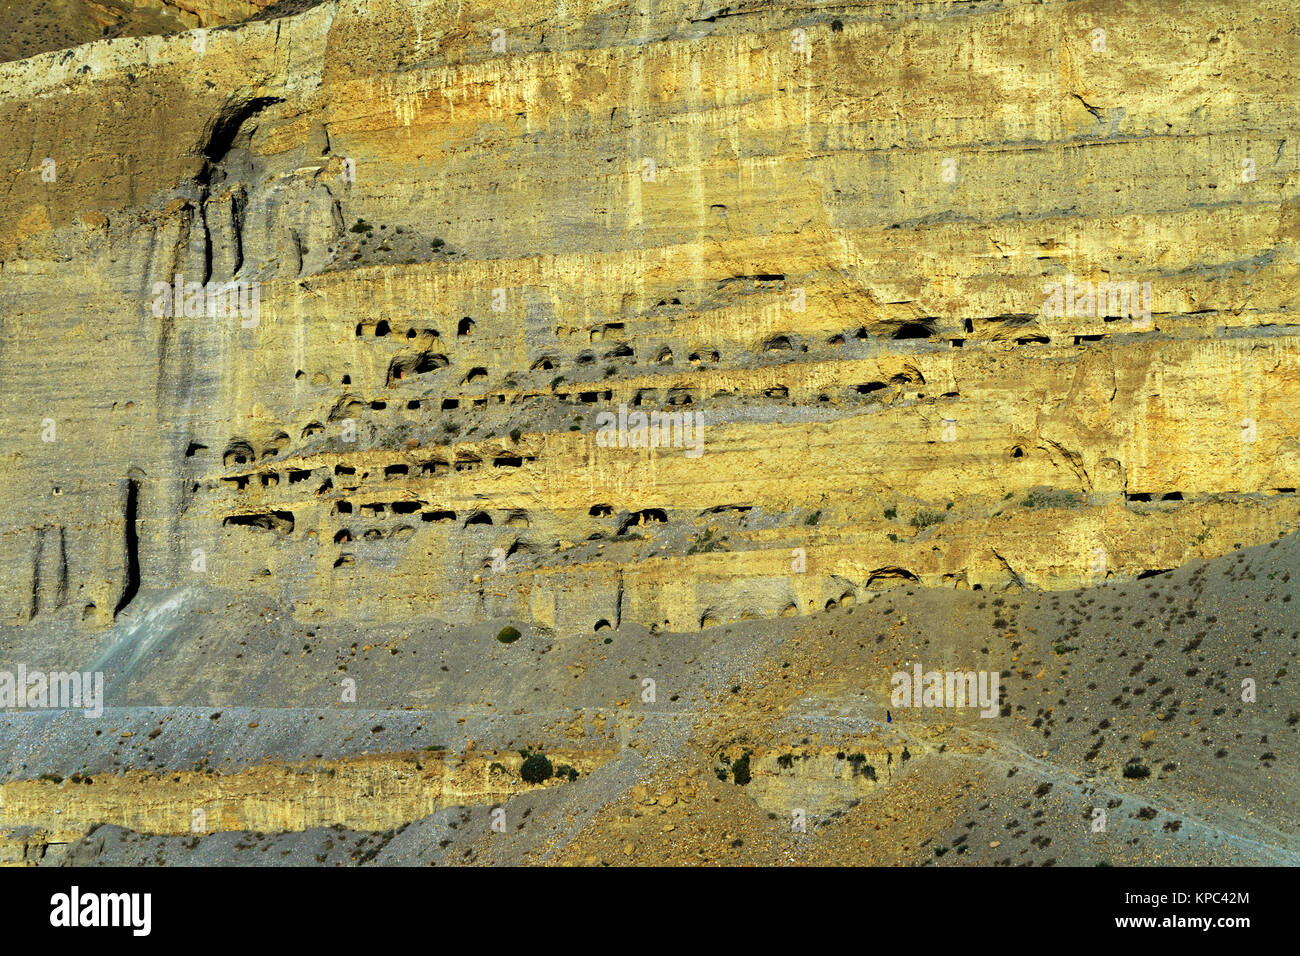 ancient-cave-dwellings-carved-in-a-gigantic-cliff-above-chuksang-upper-KPC42M.jpg